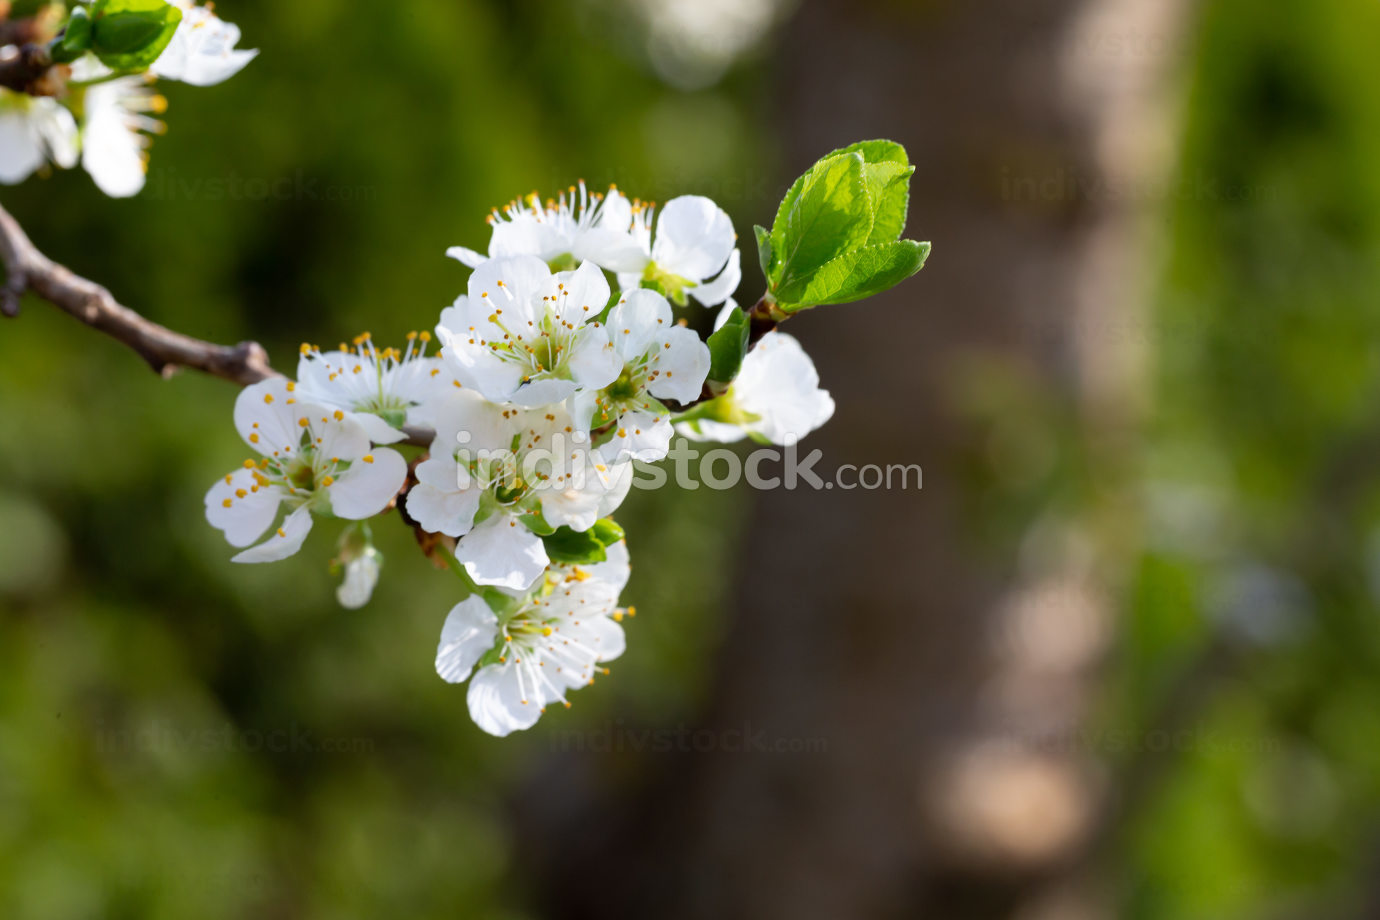 White cherry blossoms with the first green leaves